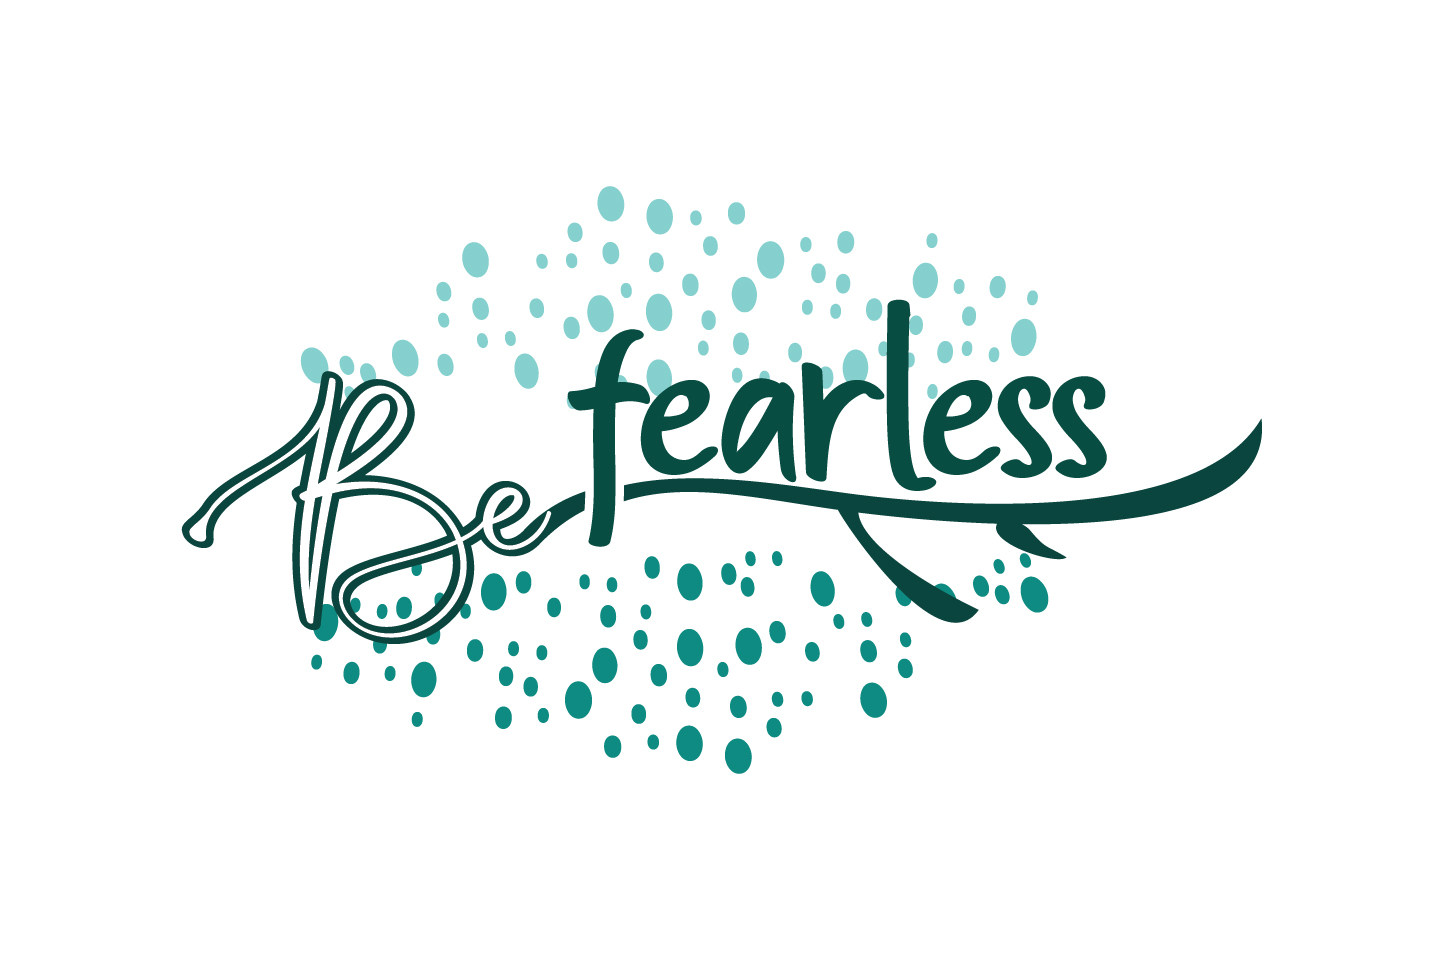 Download Free Be Fearless Motivation Quote Svg Cut Graphic By Yuhana Purwanti for Cricut Explore, Silhouette and other cutting machines.